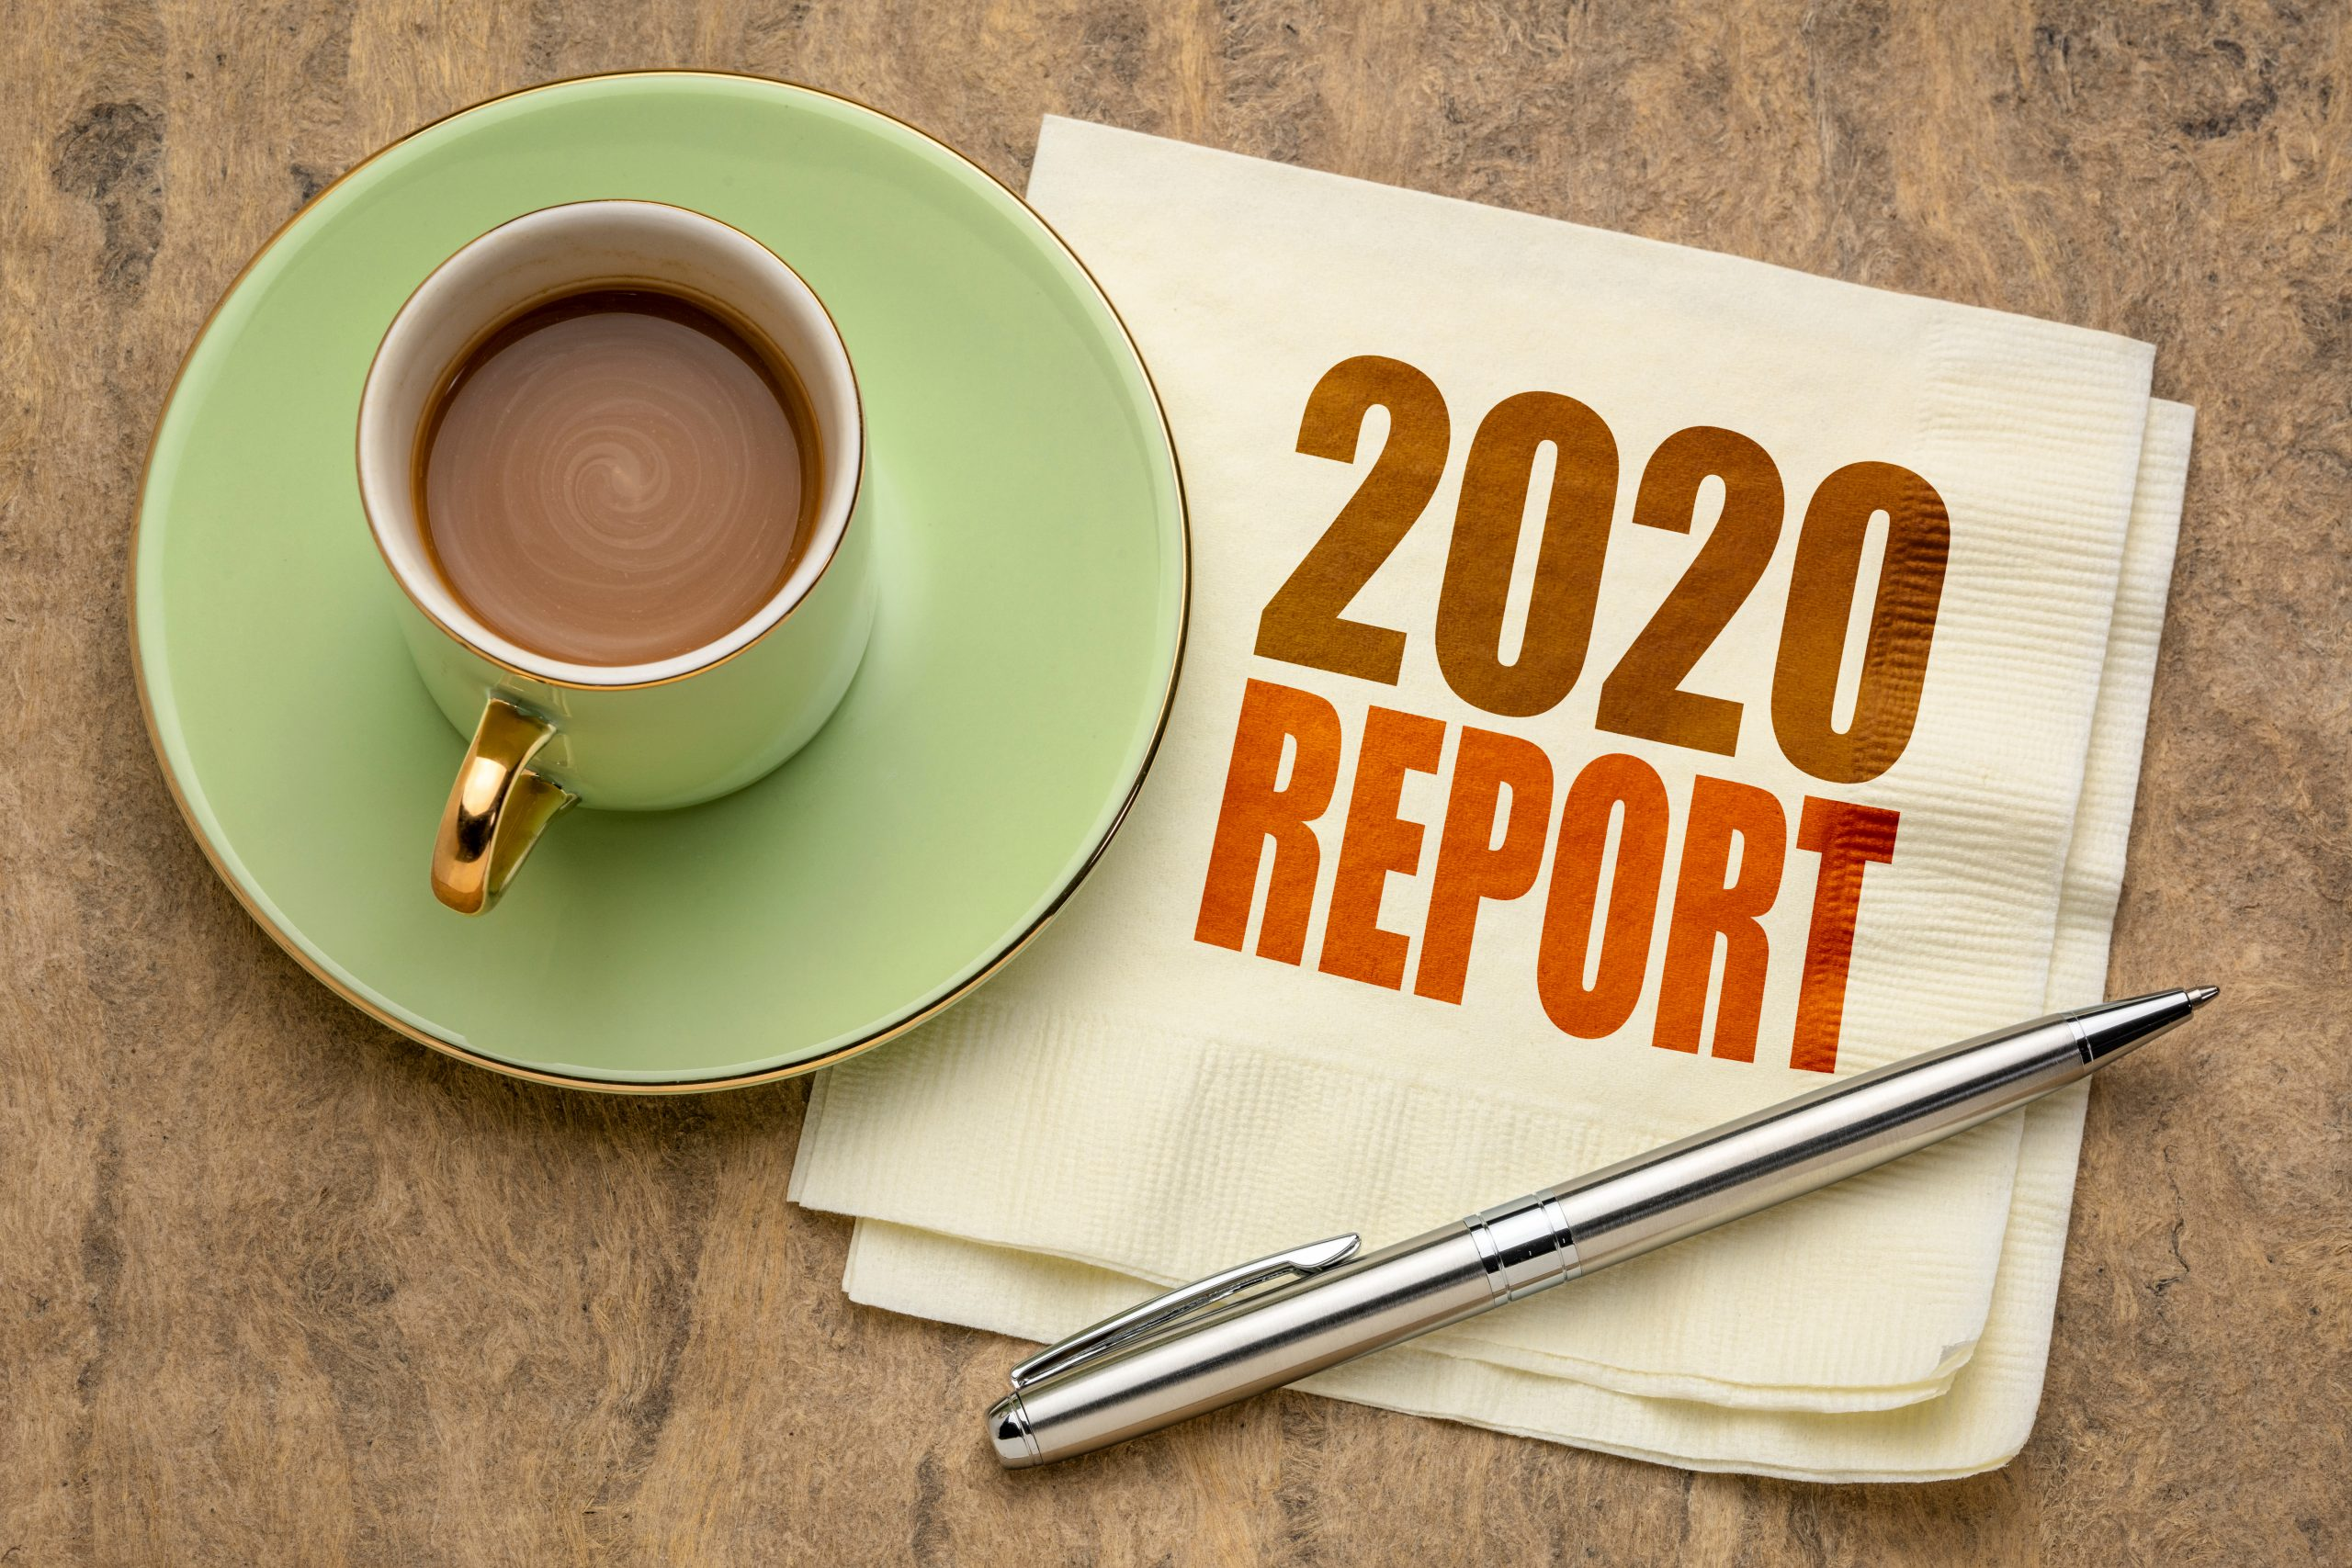 2020 News In Review